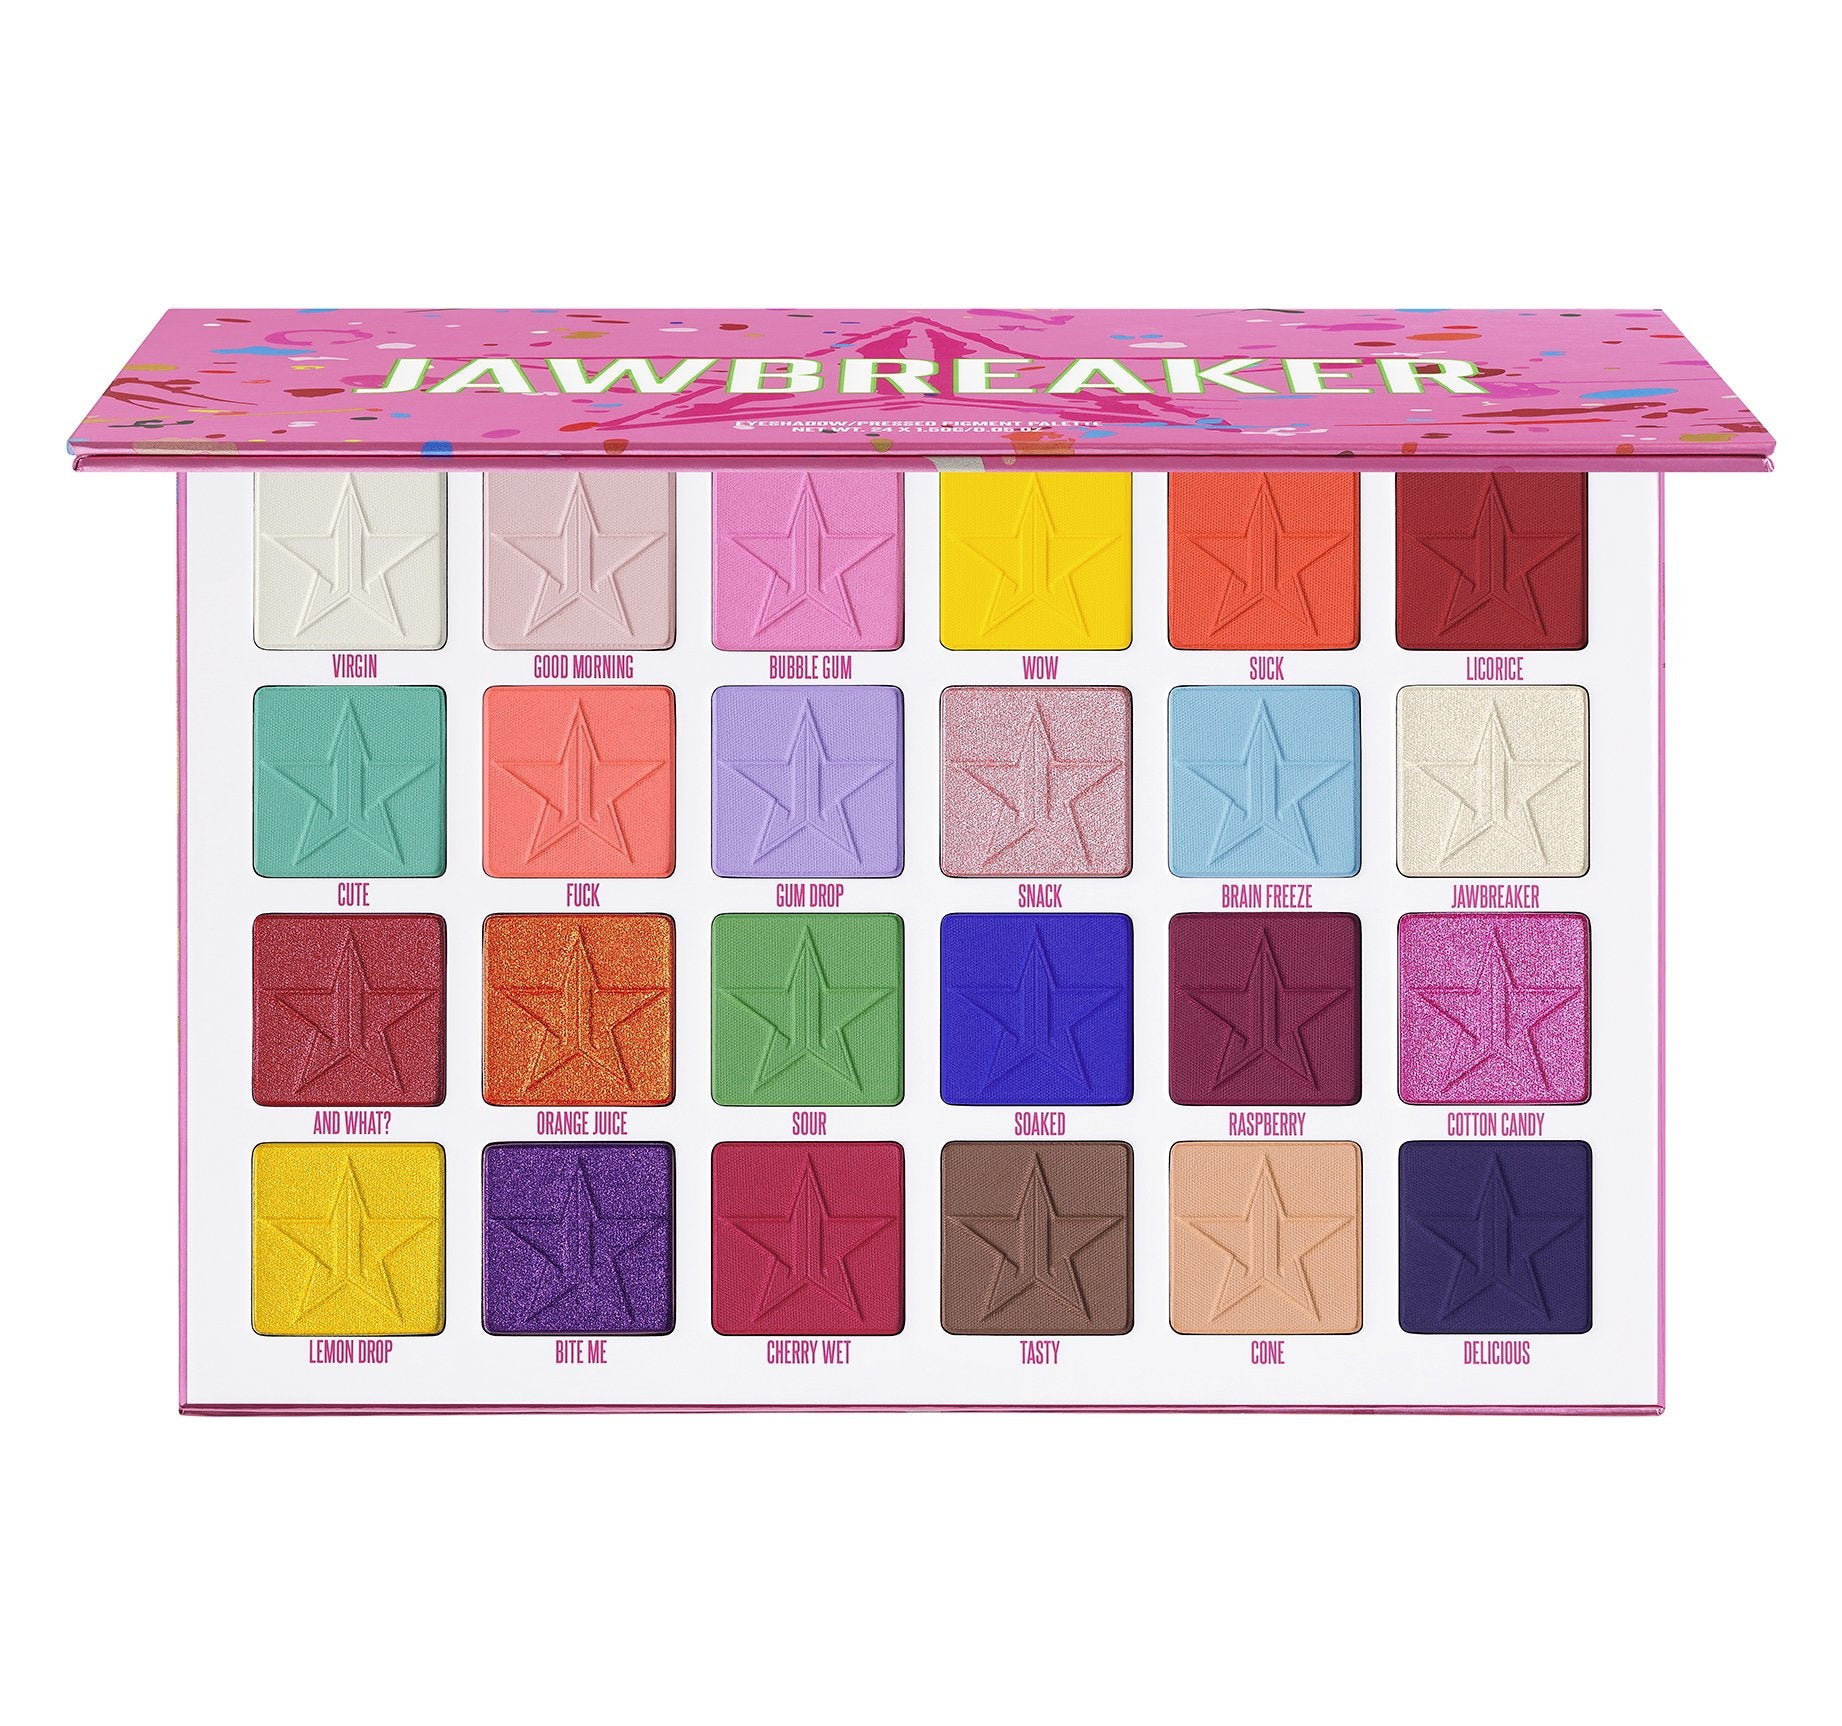 JAWBREAKER PALETTE, view larger image